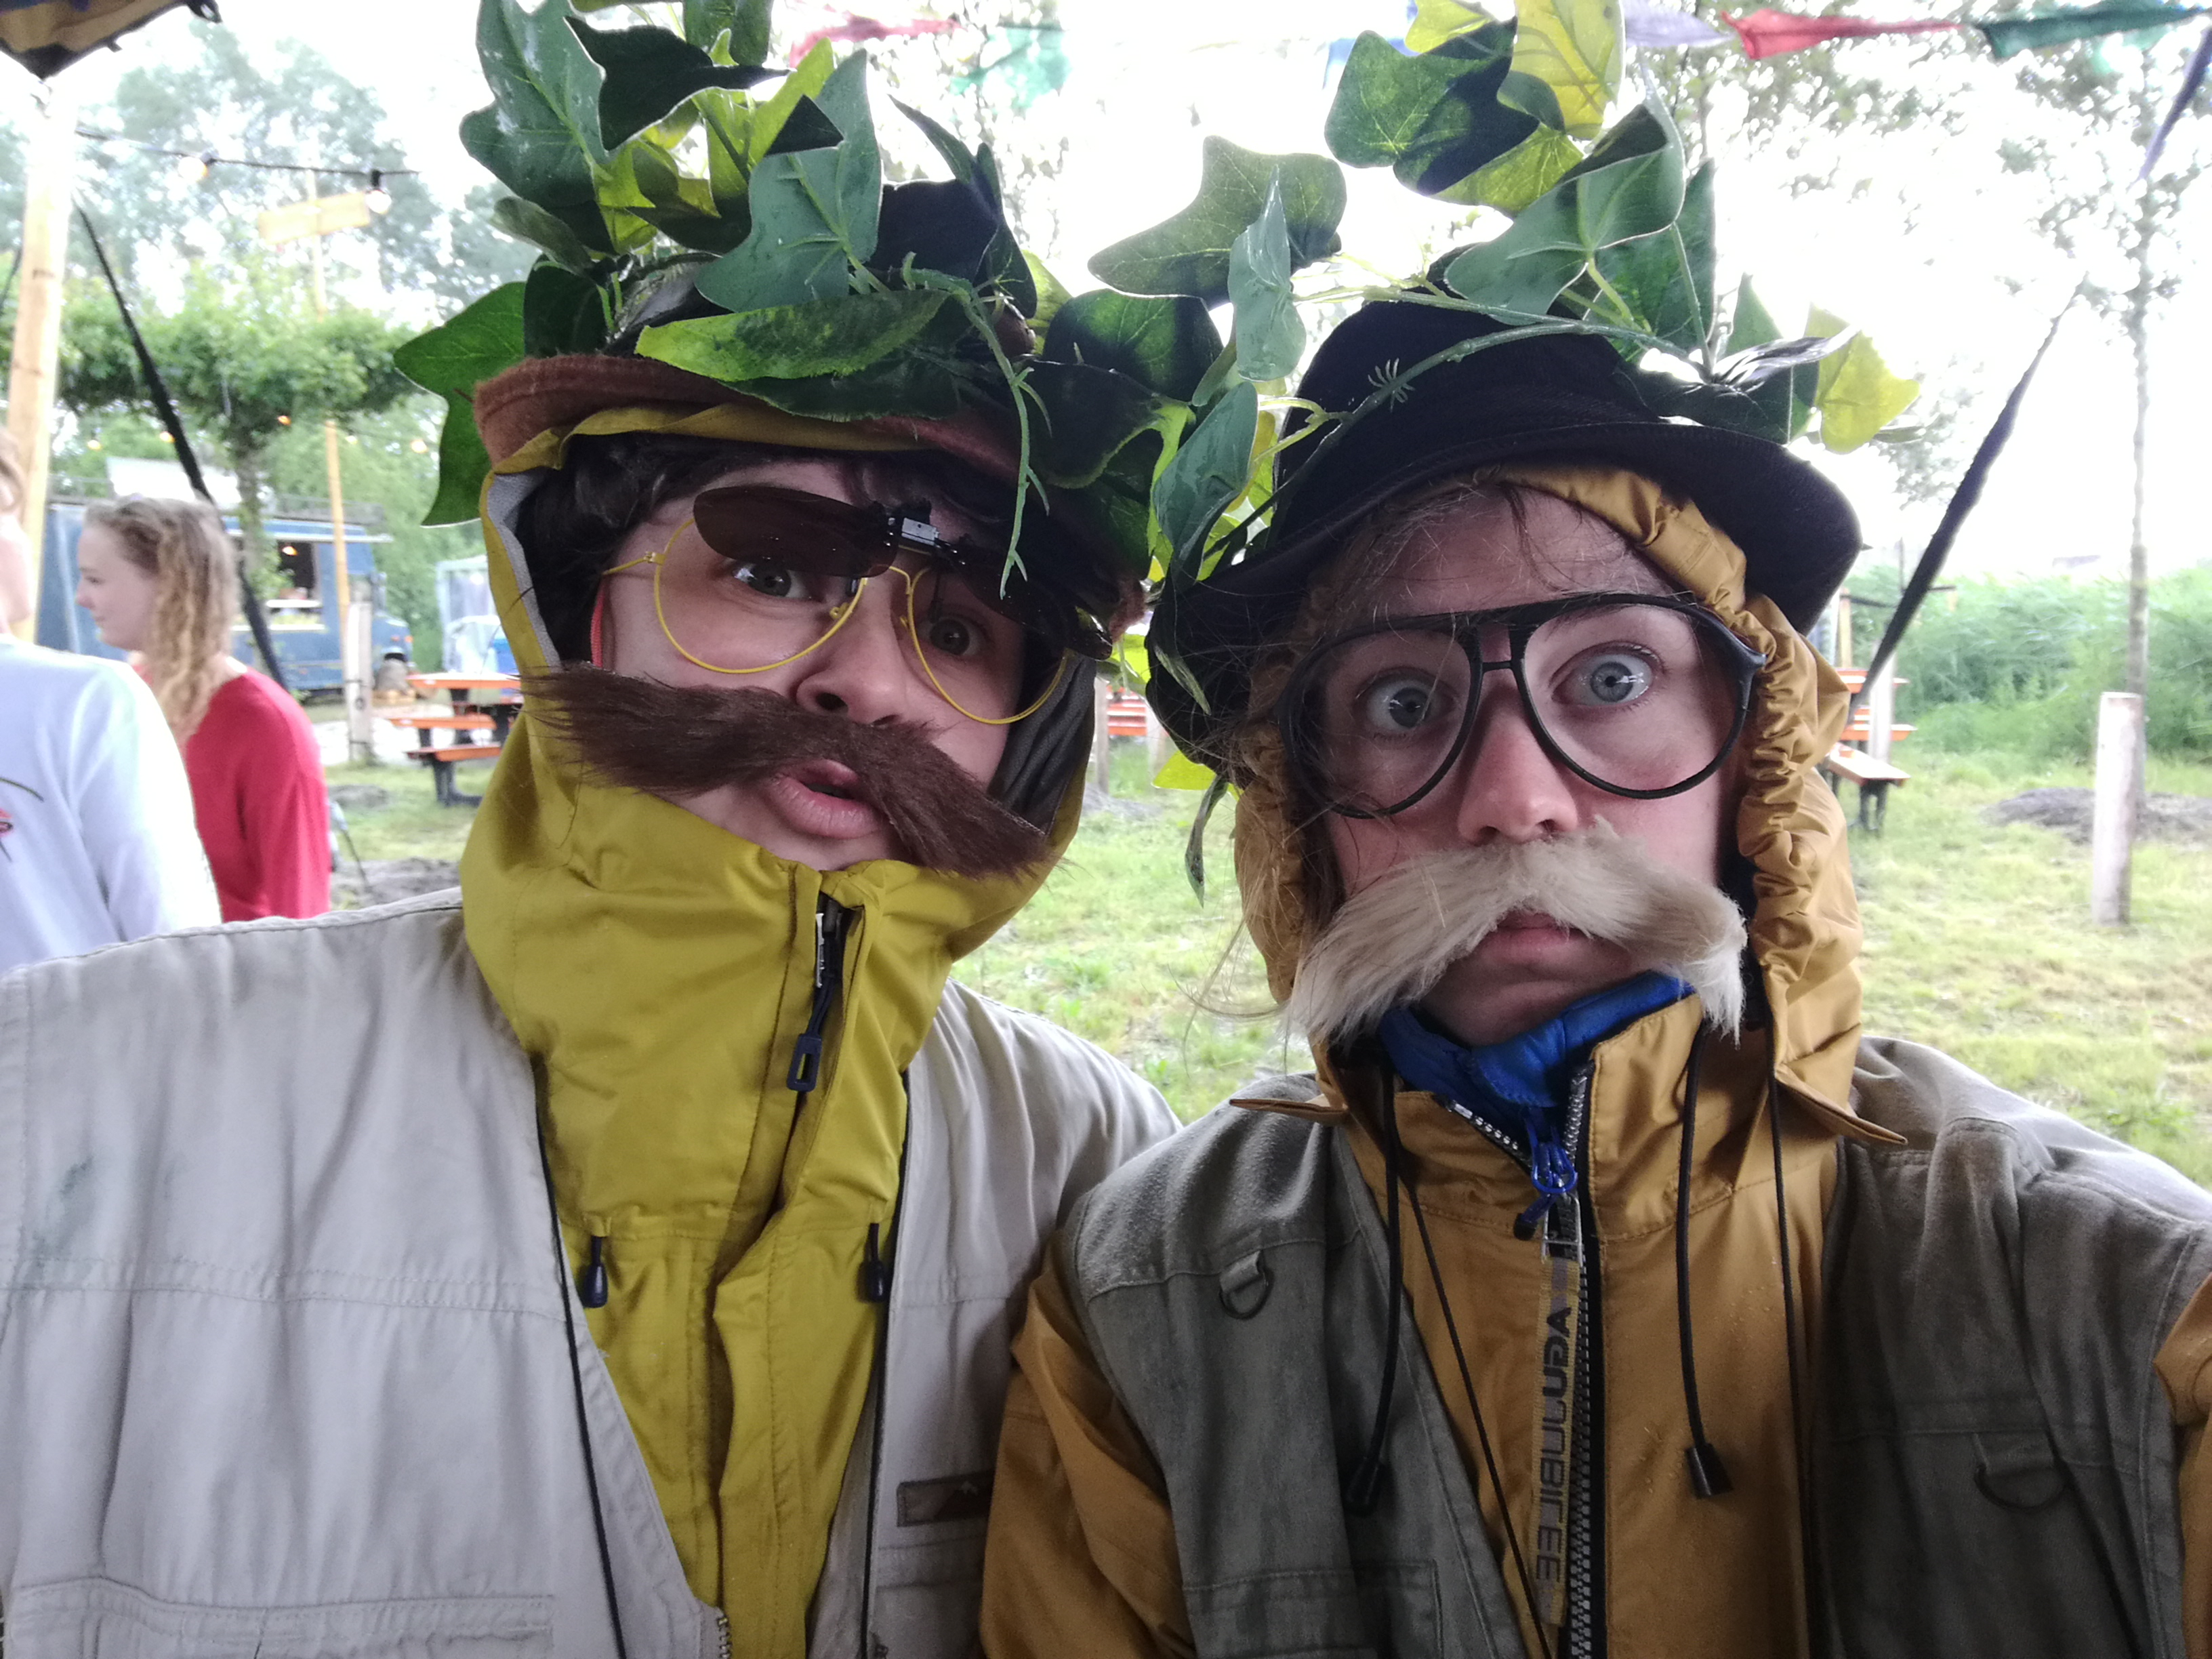 Voedselboswachters Bram en Kees New Grounds festival 2019